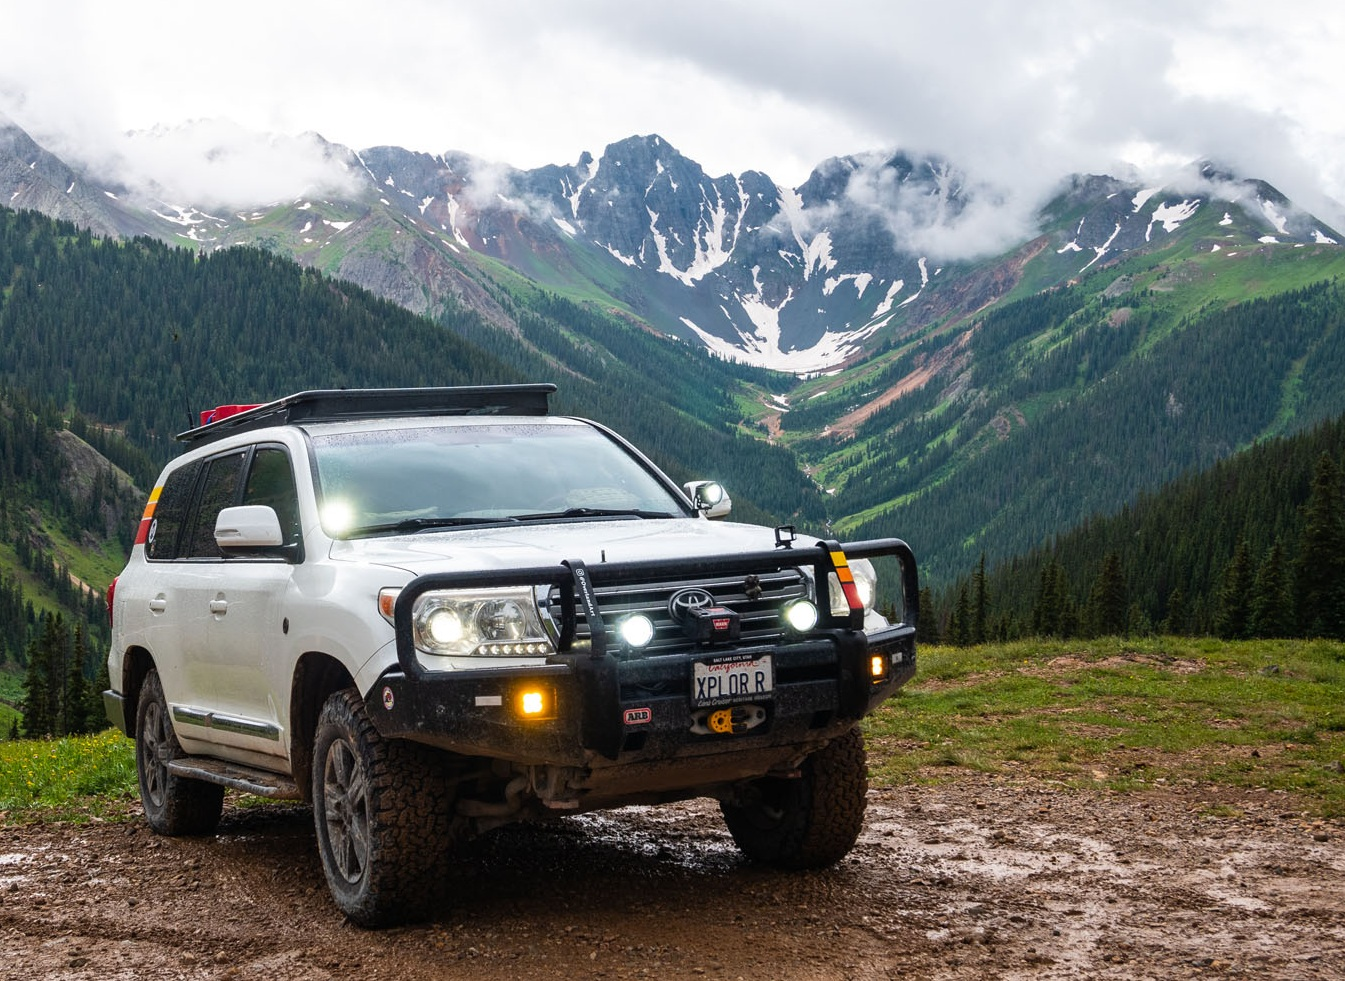 Our truck - the XPLOR R - is a 2014 Toyota Land Cruiser with a moderate list of purposefully selected upgrades and amenities. I should do a post about it sometime…